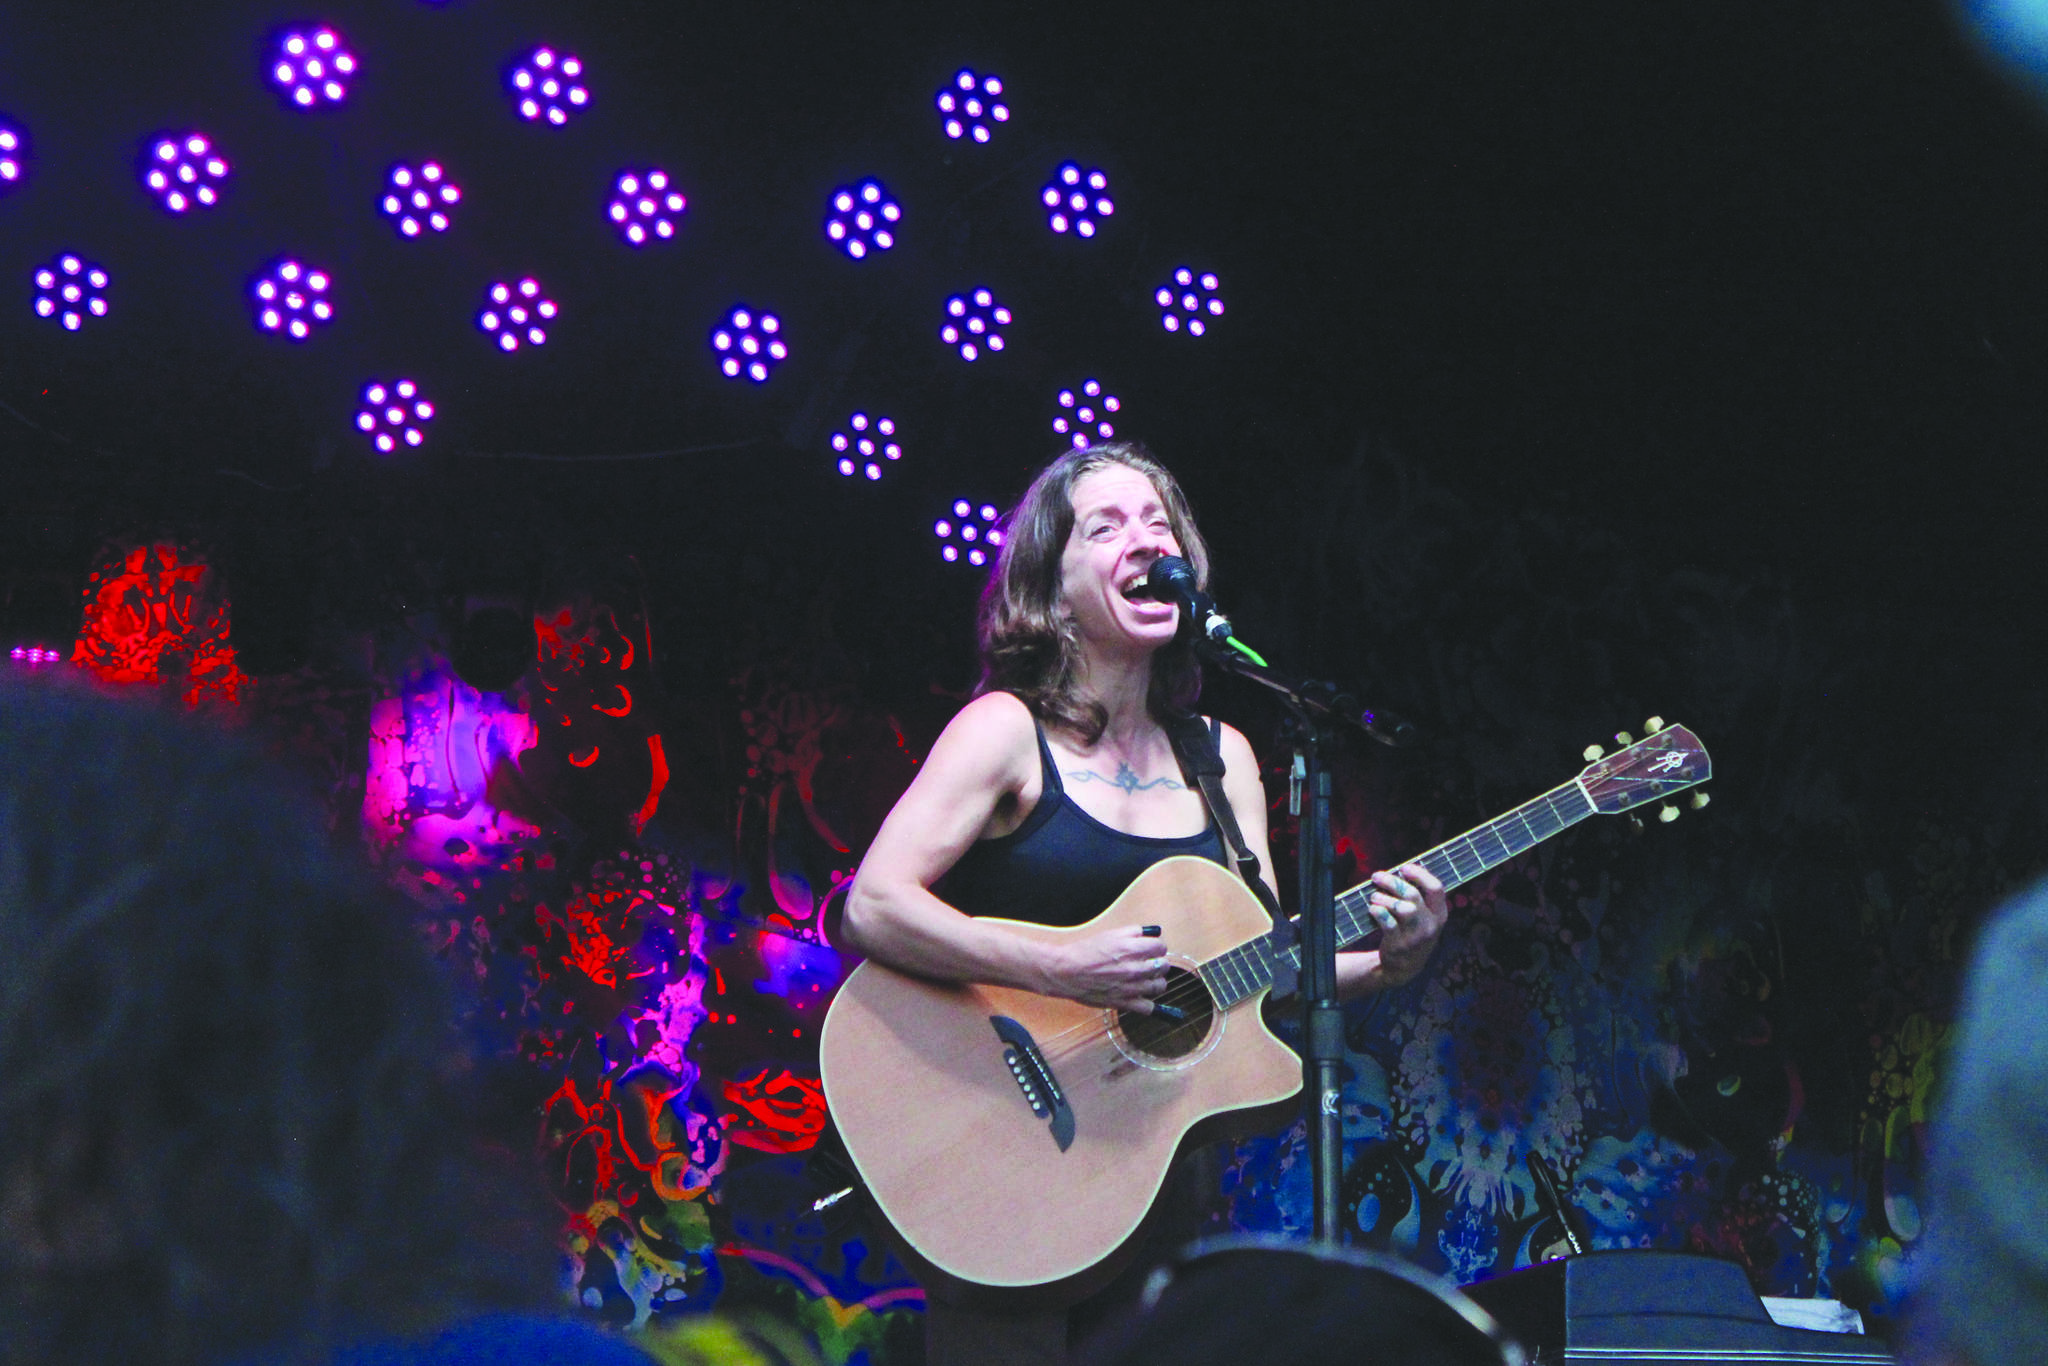 Ani DiFranco performs as the headliner at Salmonfest on Friday, Aug. 2, 2019 in Ninilchik, Alaska. (Photo by Megan Pacer/Homer News)